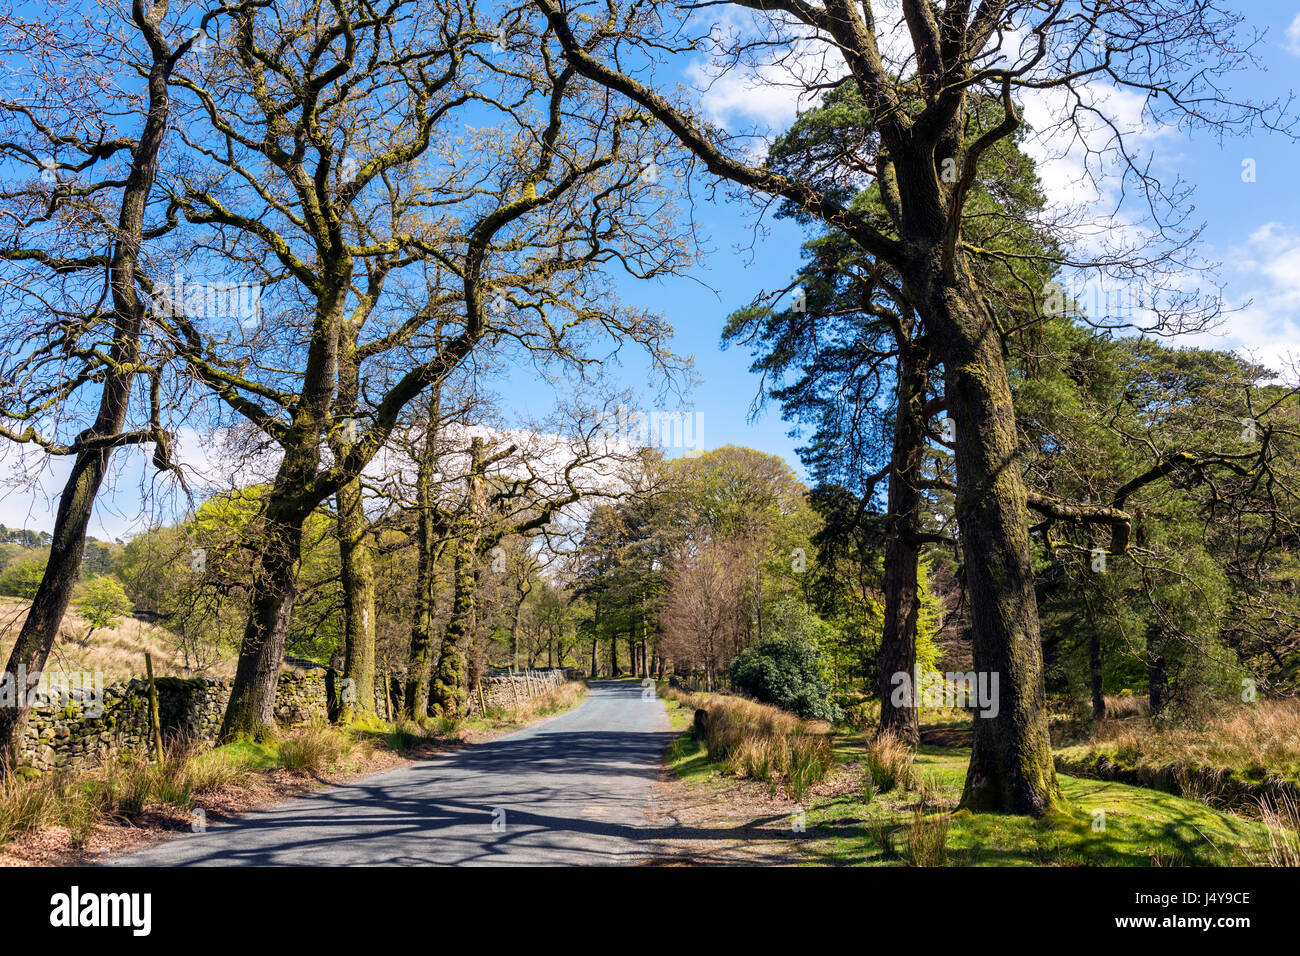 Forest of Bowland. Road alongside the River Marshaw Wyre in the Trough of Bowland, Lancashire, England, UK - Stock Image